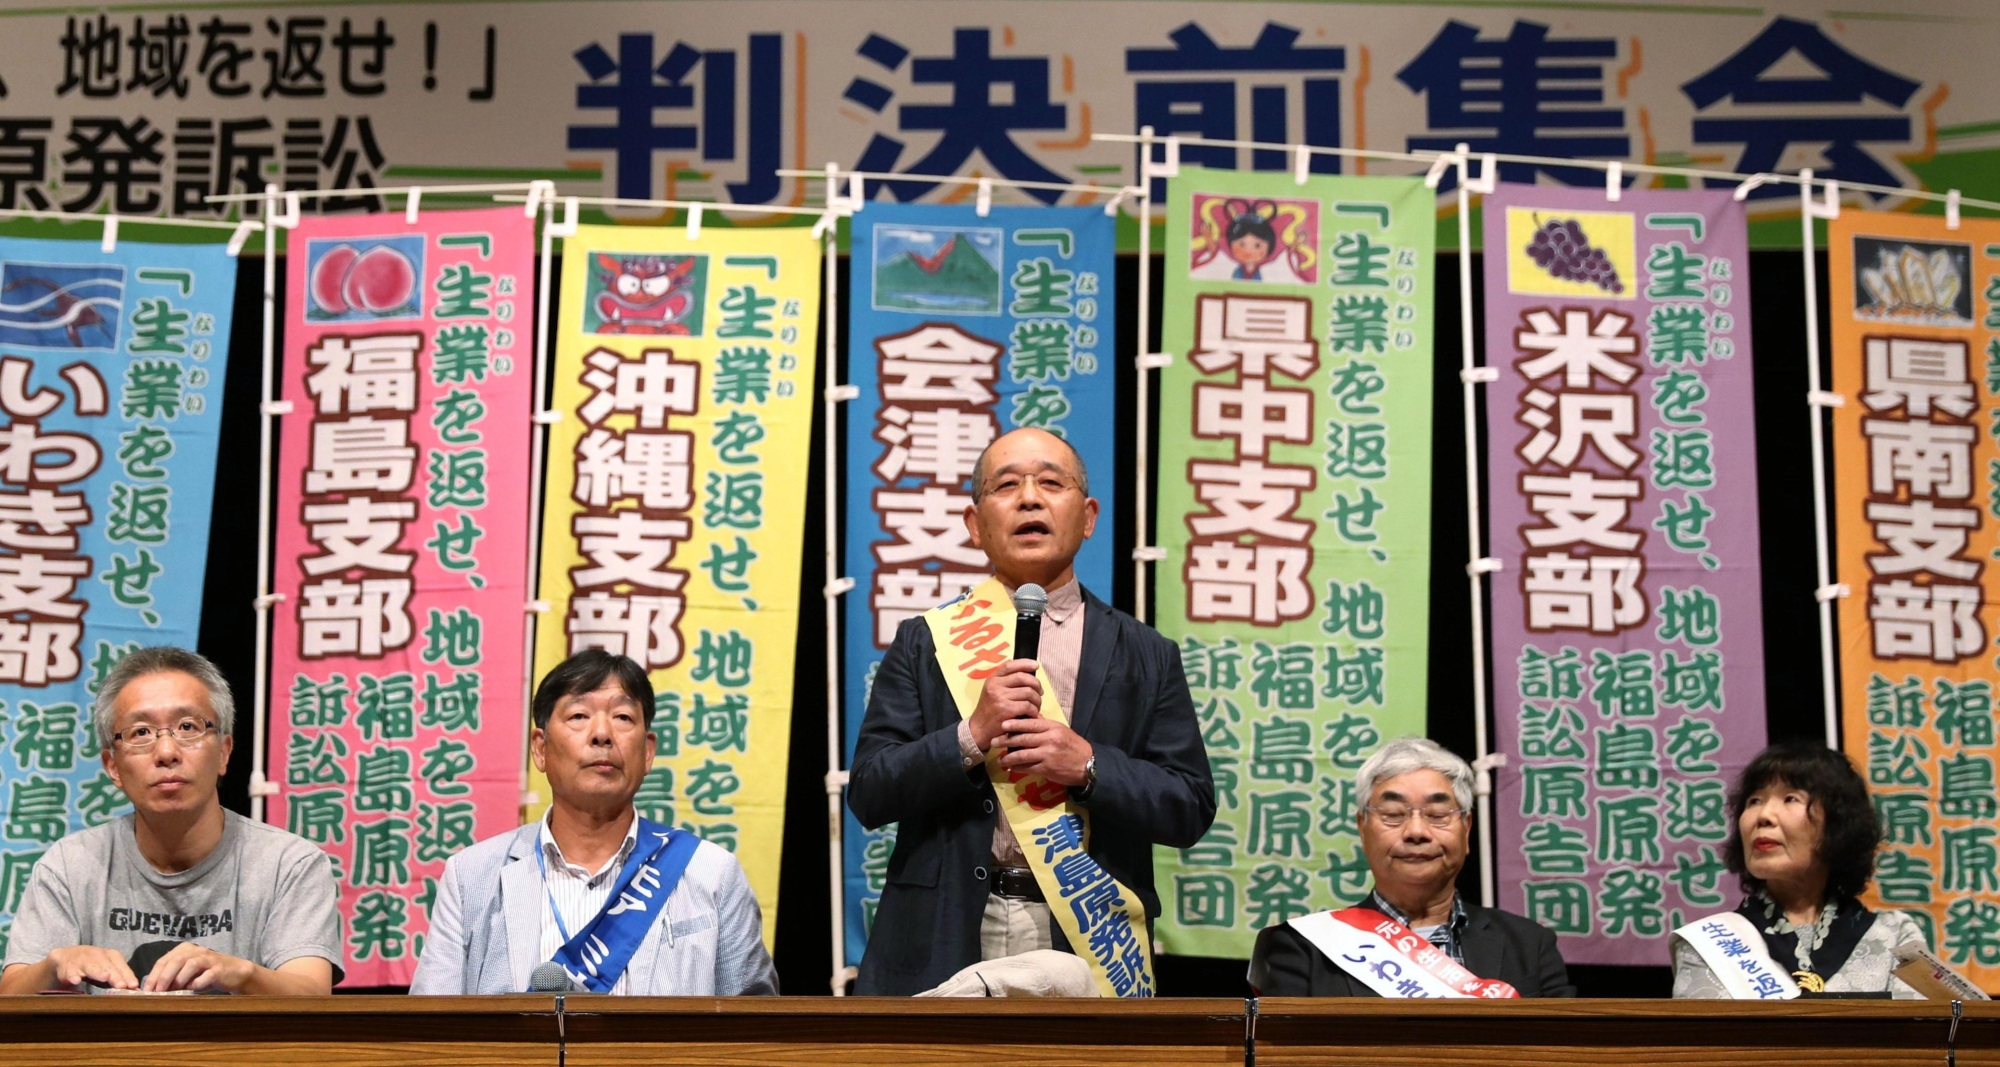 A man speaks on Tuesday in the city of Fukushima during a meeting of victims seeking damages from the government and Tepco over the 3/11 nuclear disaster. Later in the day, the court ruled in their favor. | KYODO